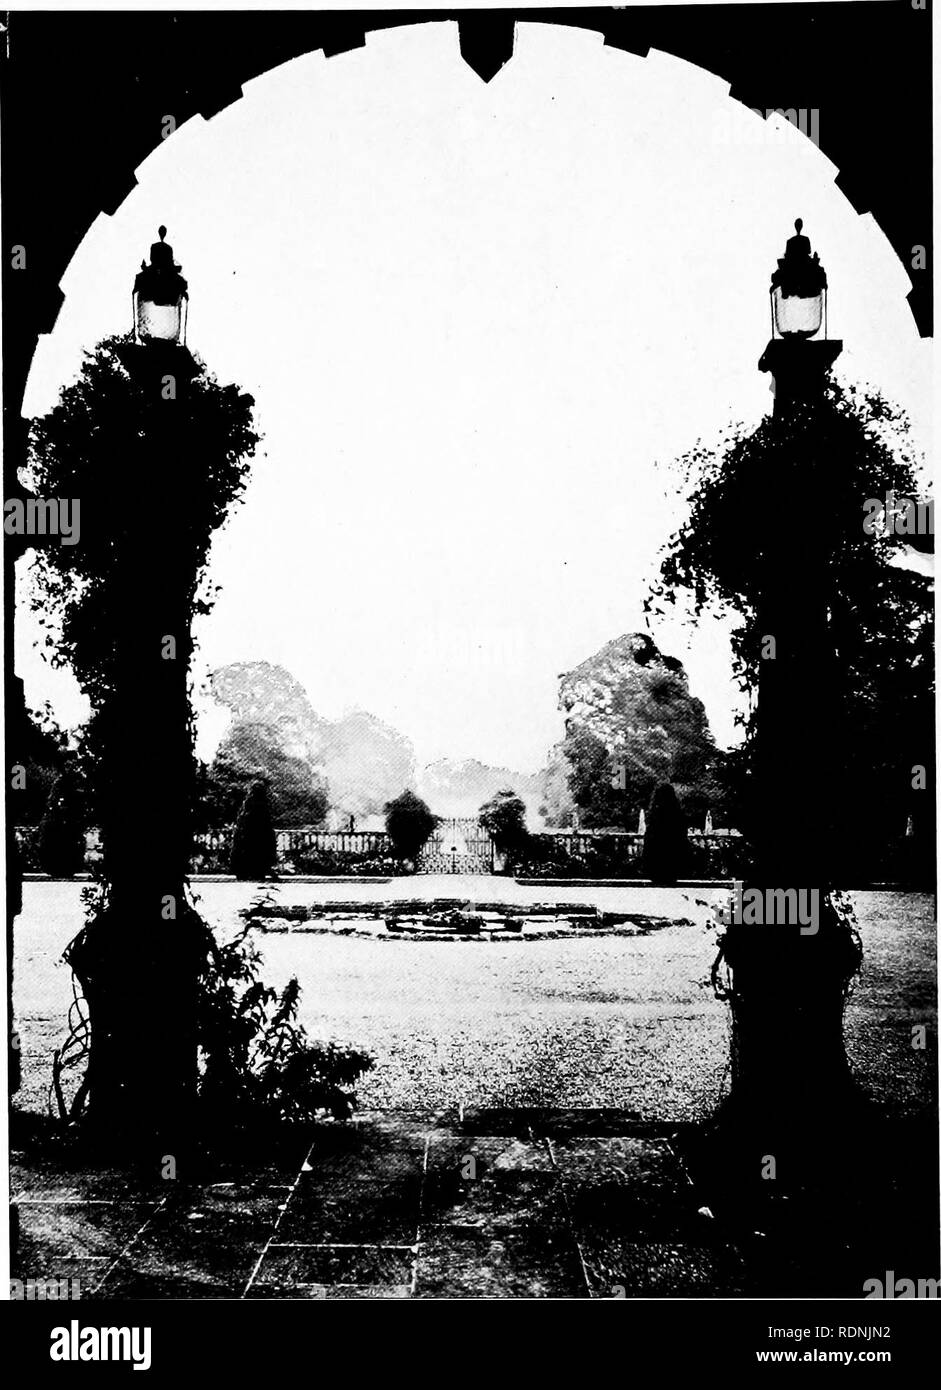 . European and Japanese gardens; papers read before the American Institute of Architects ... Gardens; Gardens. VIEW FROM MONTECUTE HOUSE. Please note that these images are extracted from scanned page images that may have been digitally enhanced for readability - coloration and appearance of these illustrations may not perfectly resemble the original work.. Brown, Glenn, 1854-1932; Hamlin, A. D. F. (Alfred Dwight Foster), 1855-1926; Sturgis, R. Clipston (Richard Clipston), 1860-1951; Howard, John Galen, 1864-1931; Honda, Kinkichiro?, 1850-1921. Philadelphia, H. T. Coates & Co. - Stock Image